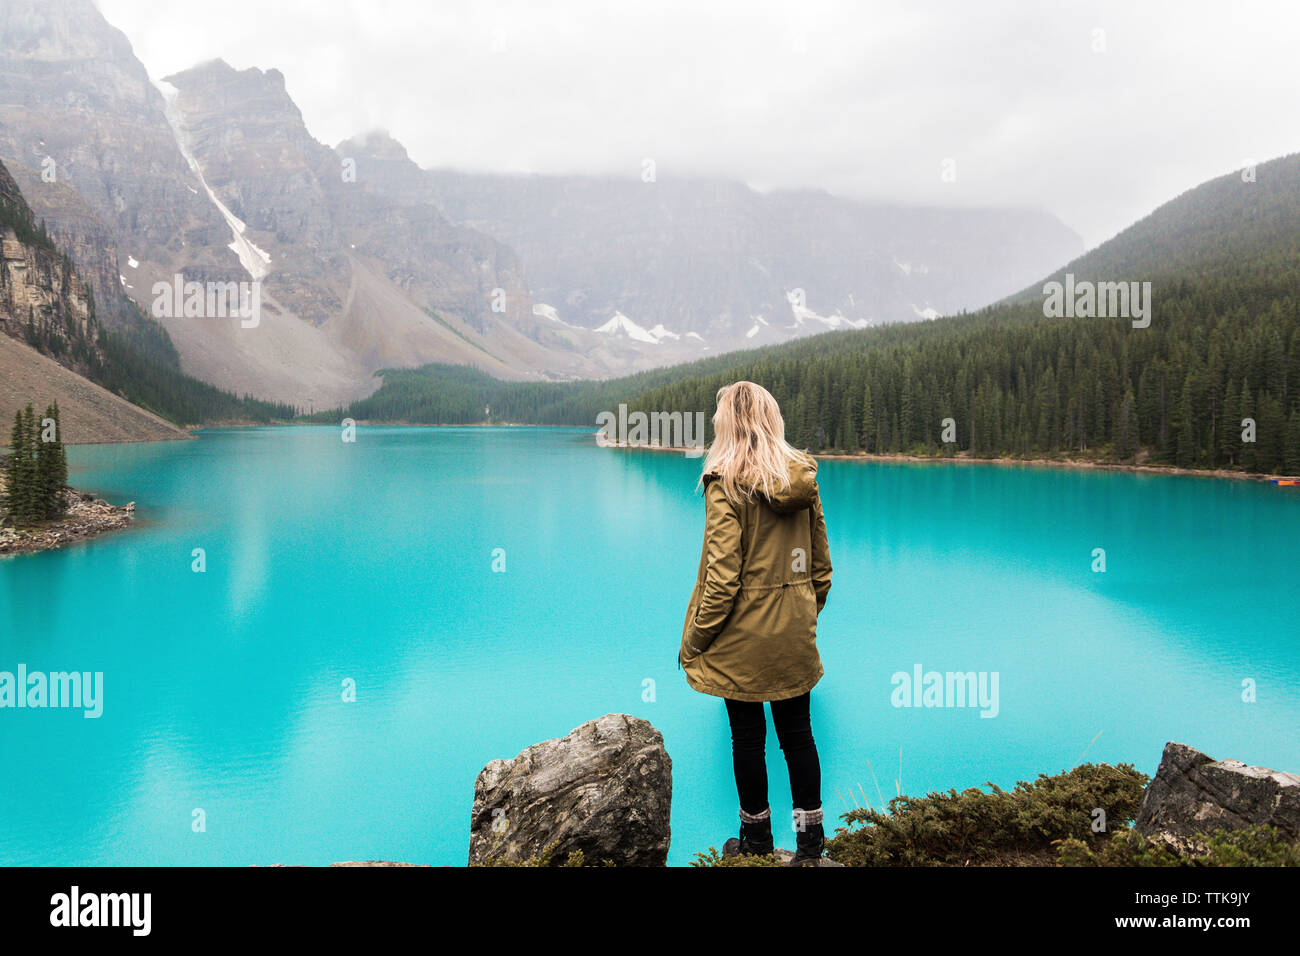 Rear view of female hiker with hand in pocket standing by Moraine Lake against mountains at Banff National Park Stock Photo